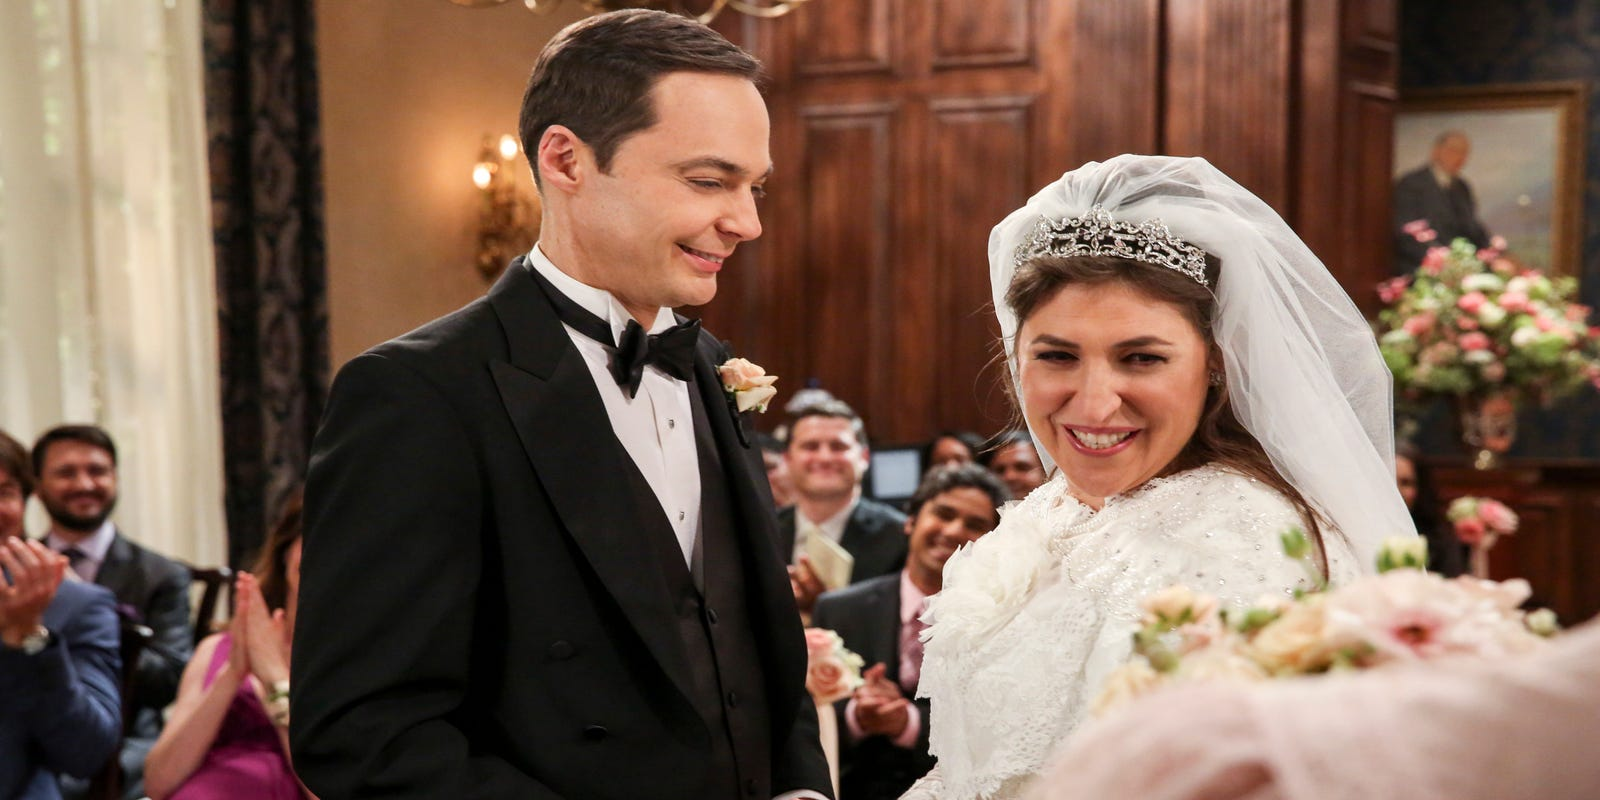 cdd1f45097262 5 things you don't know about 'The Big Bang Theory' wedding finale